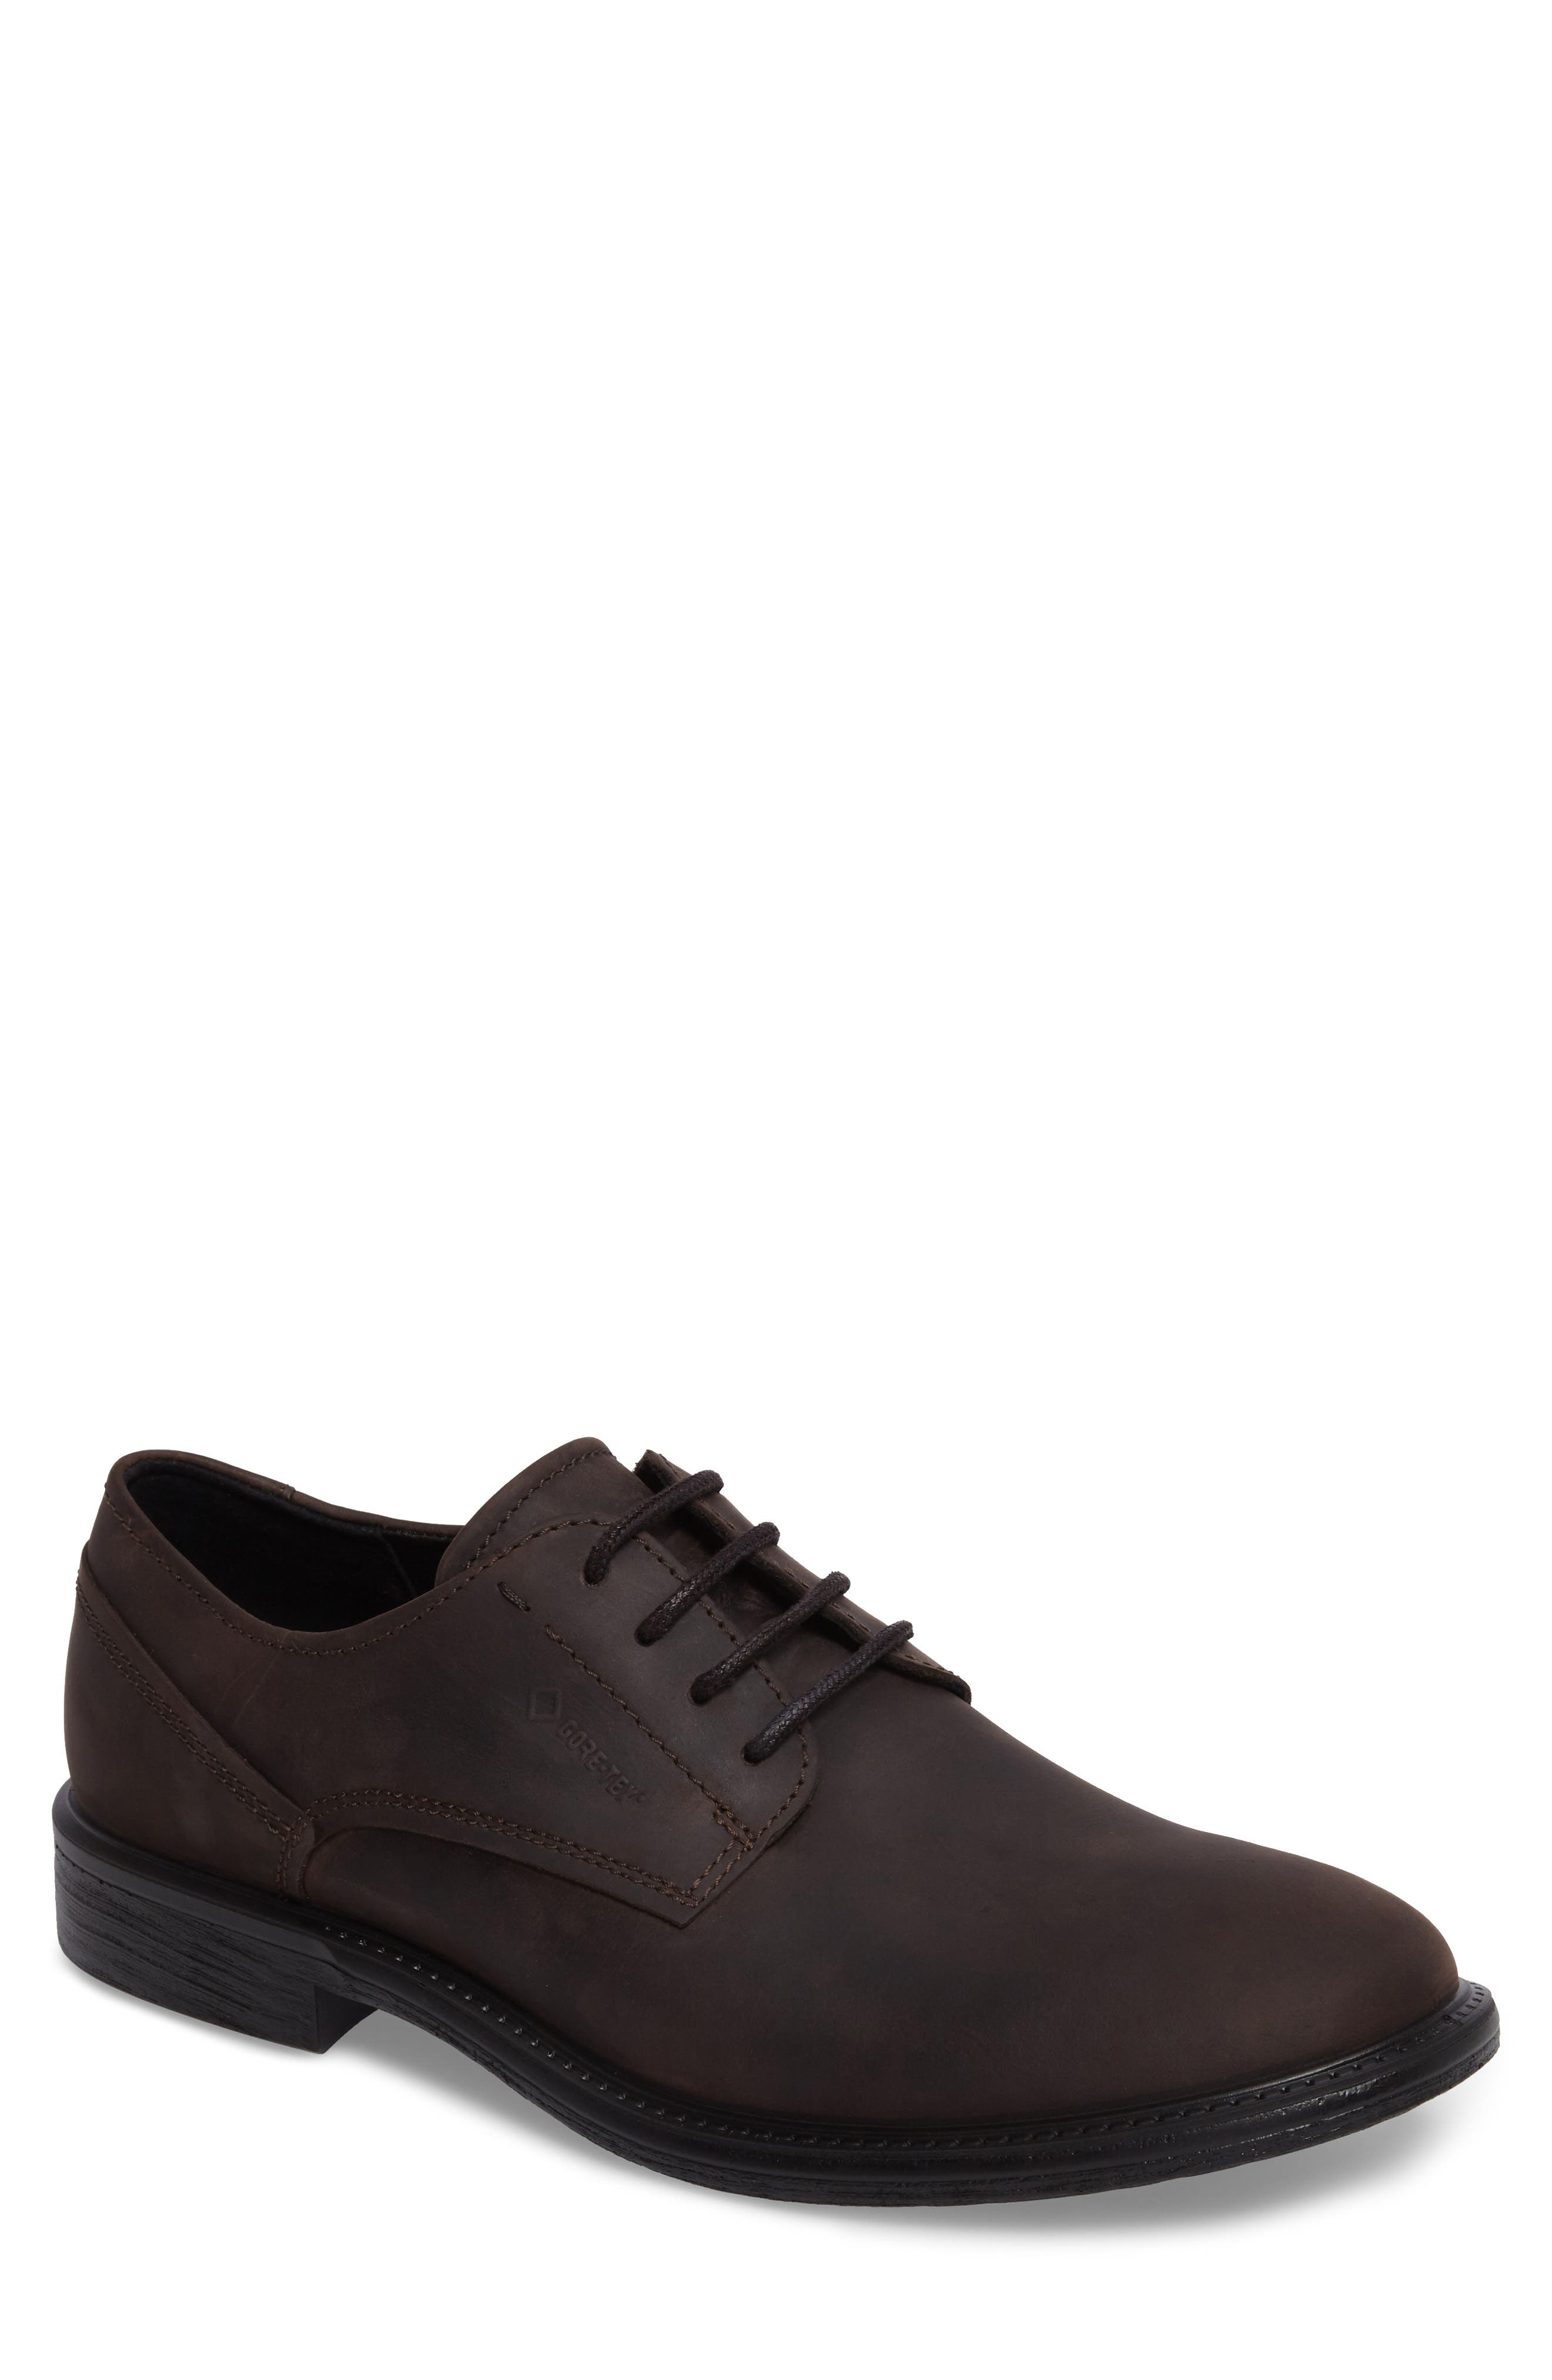 ECCO Knoxville Plain Toe Waterproof Gore-Tex® Derby (Men)